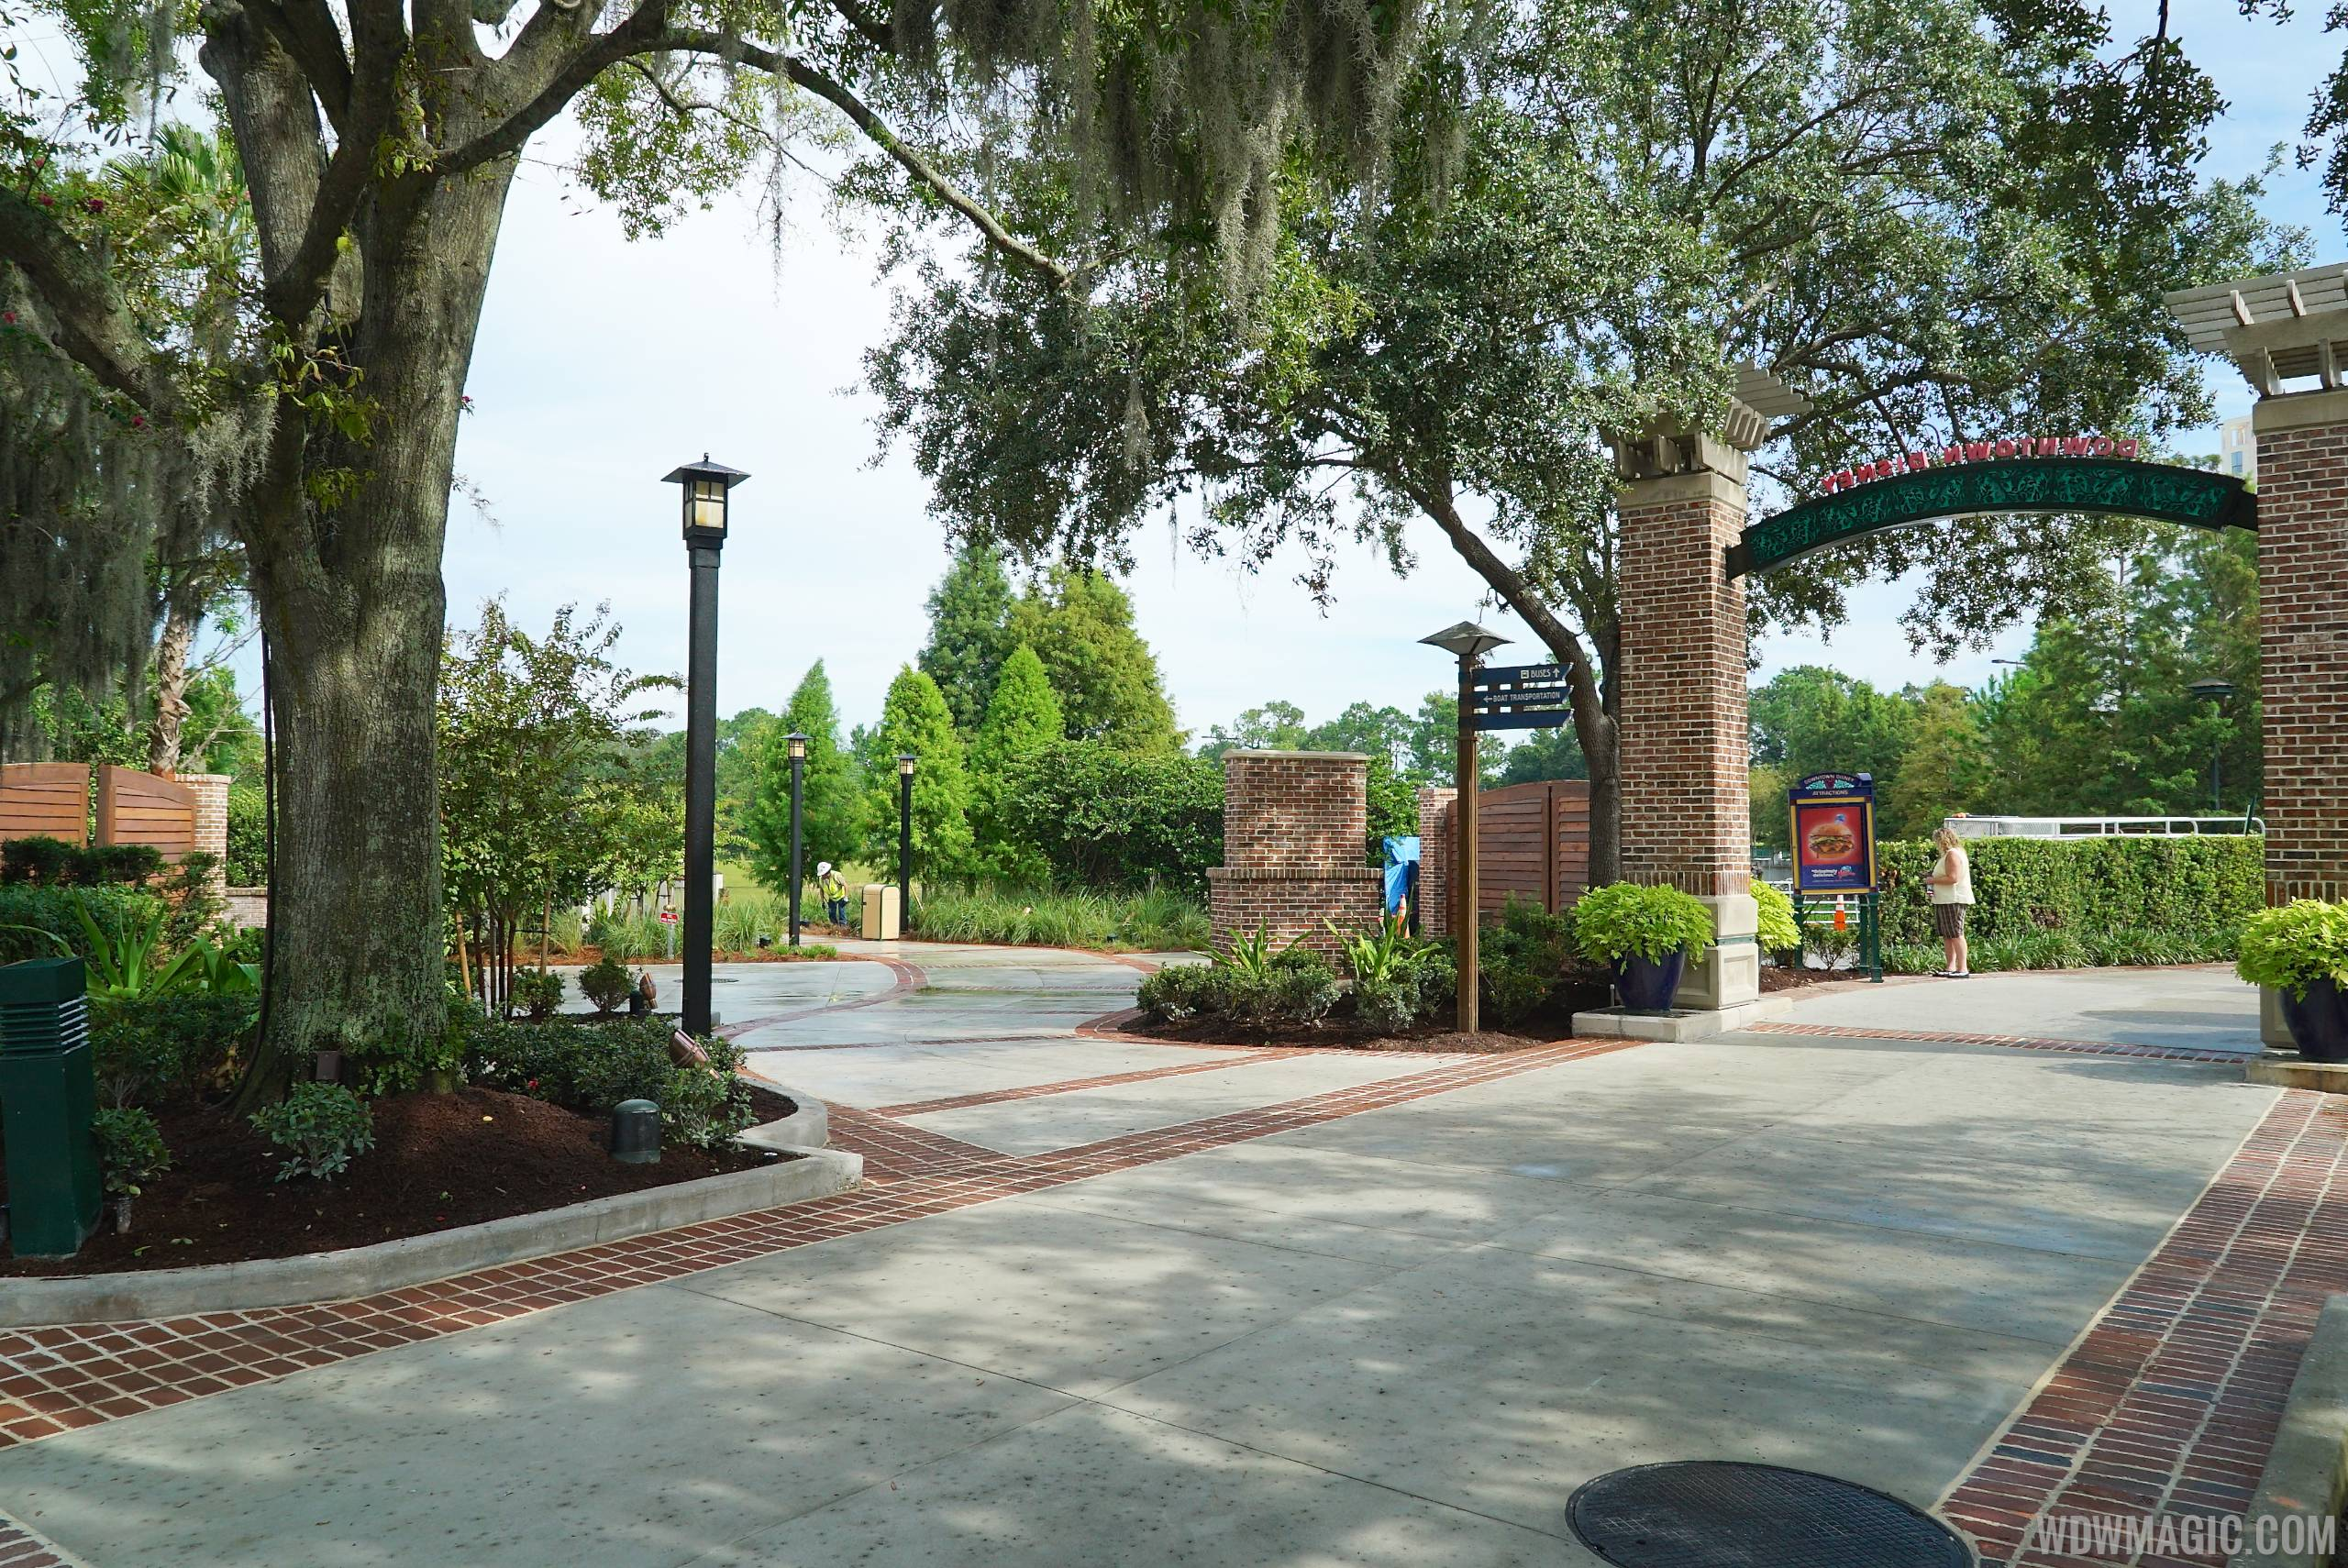 Entrance to the new Marketplace bridge and boat dock